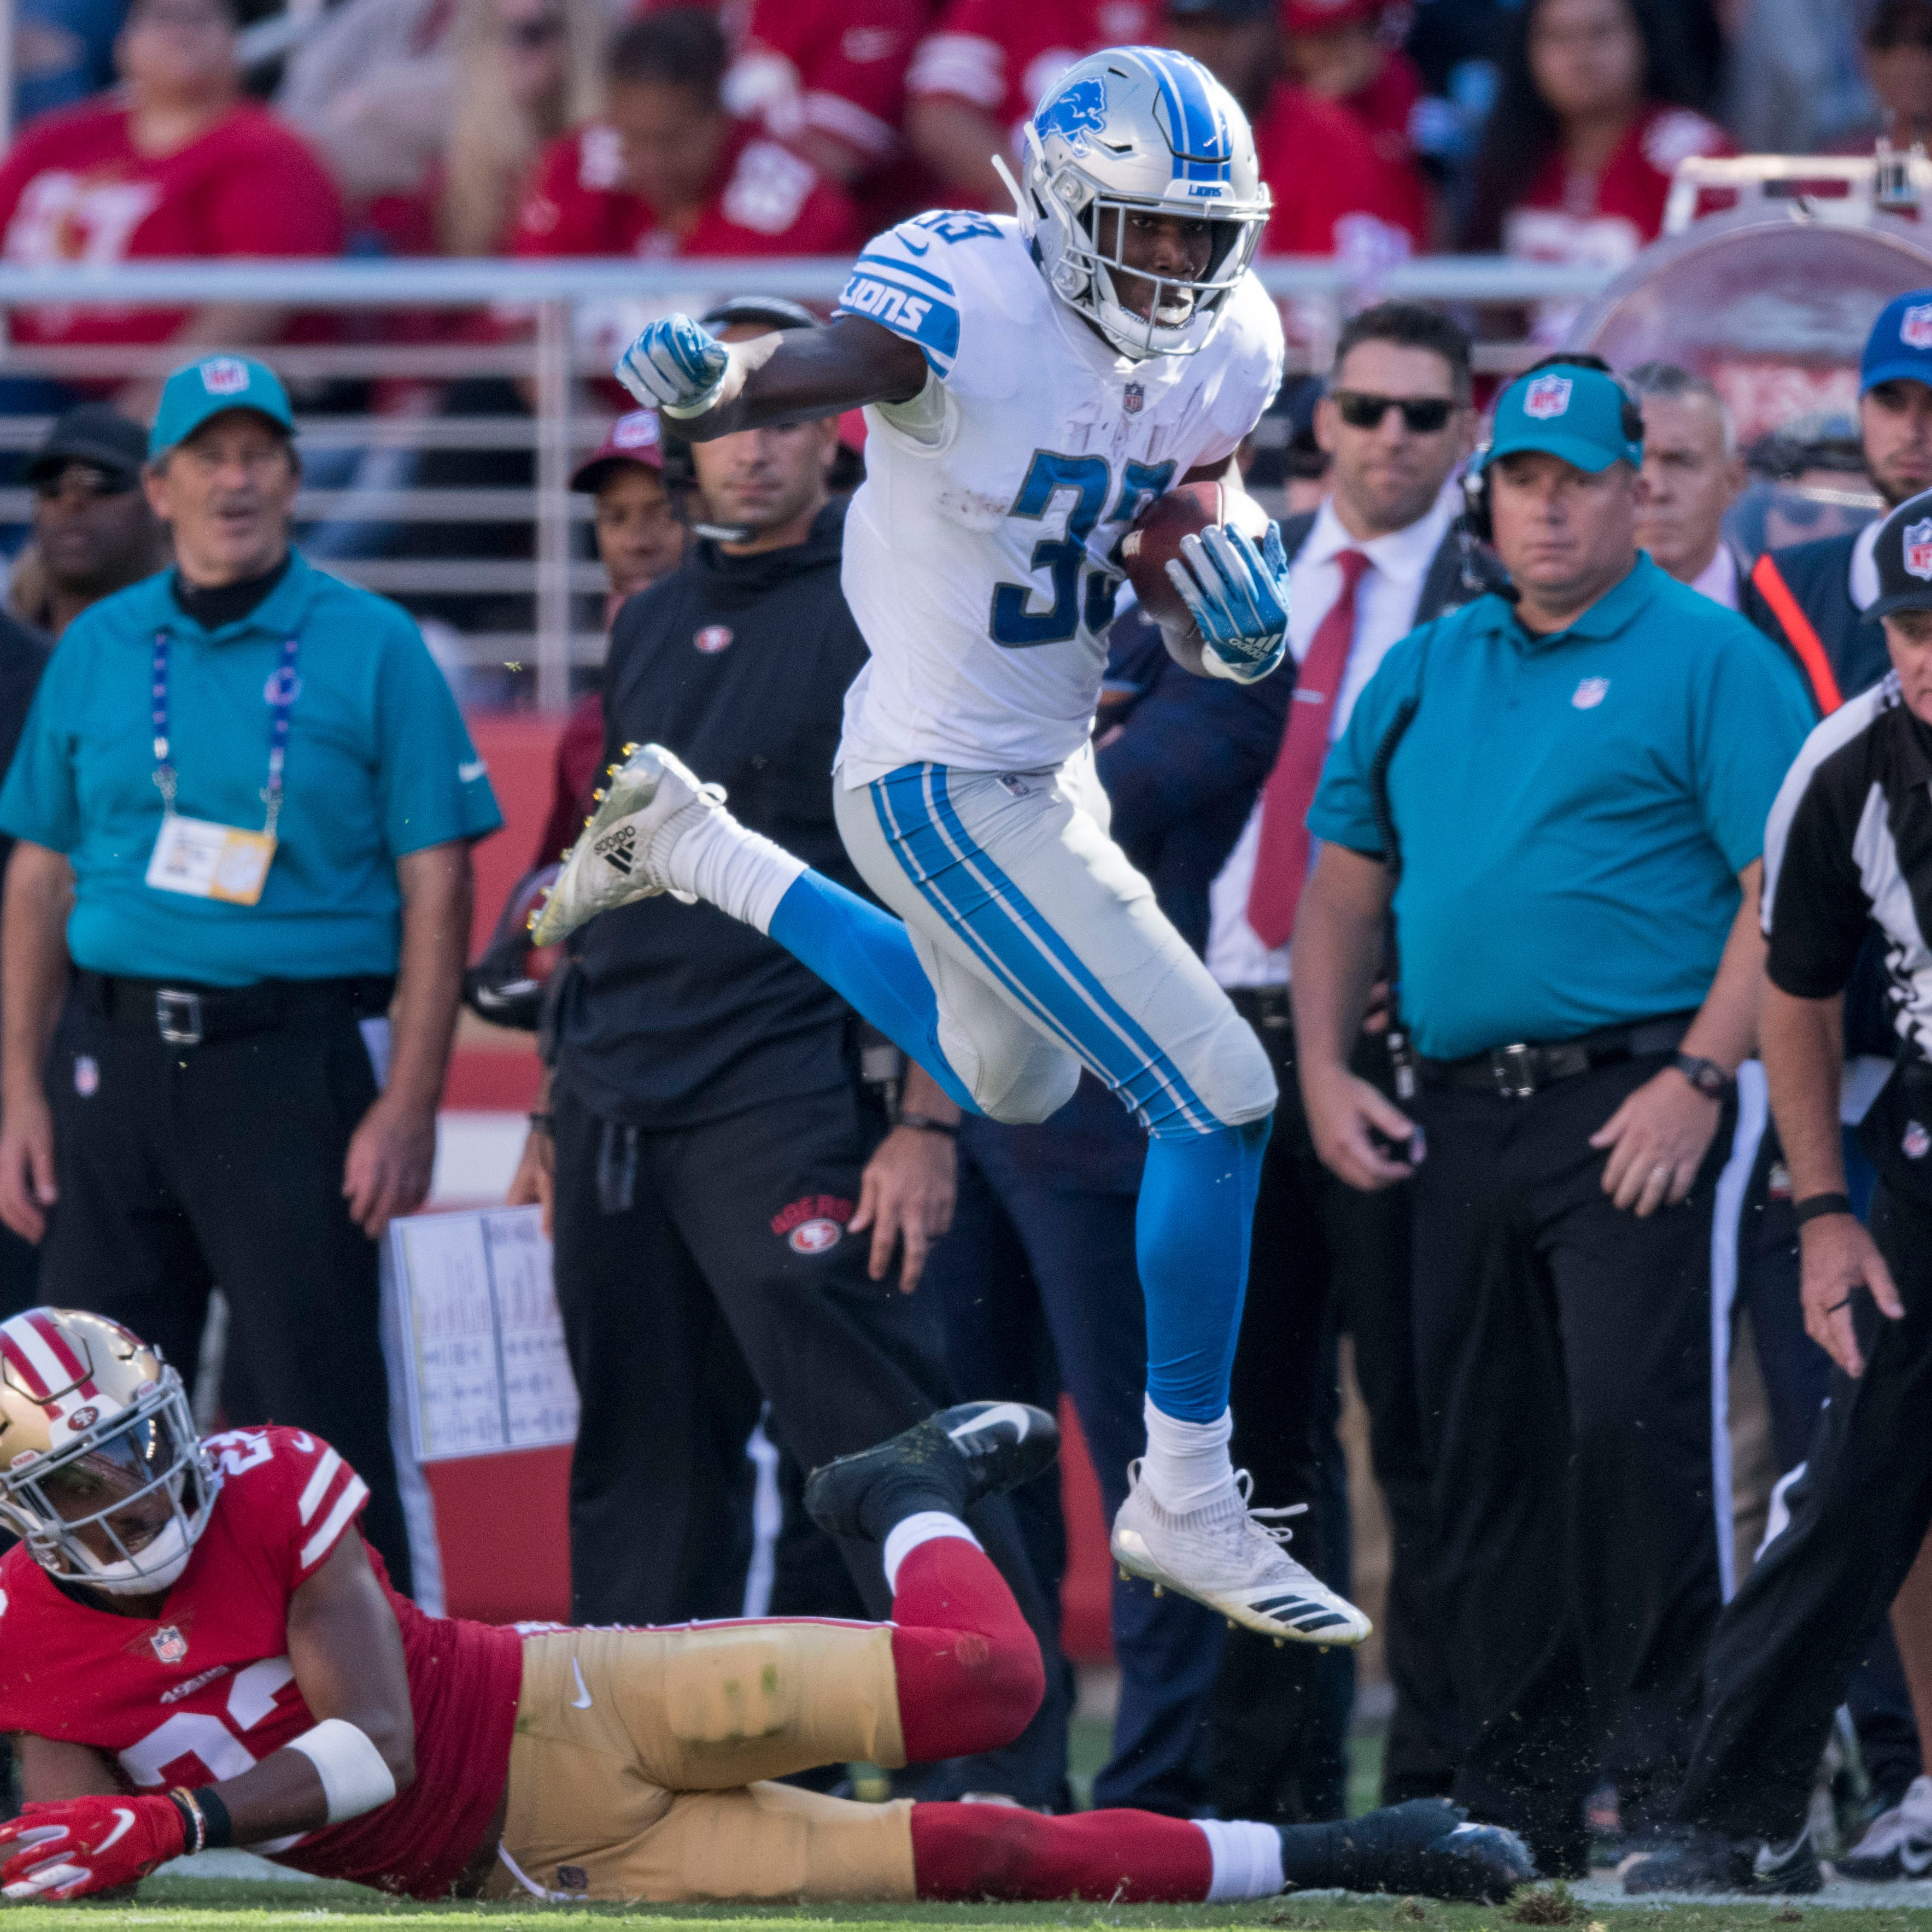 30. Lions (0-2) | Last game: Lost to the 49ers, 30-27 | Previous ranking: 30 | The buzz: Lions have December road games against the only teams lower on this list than them.